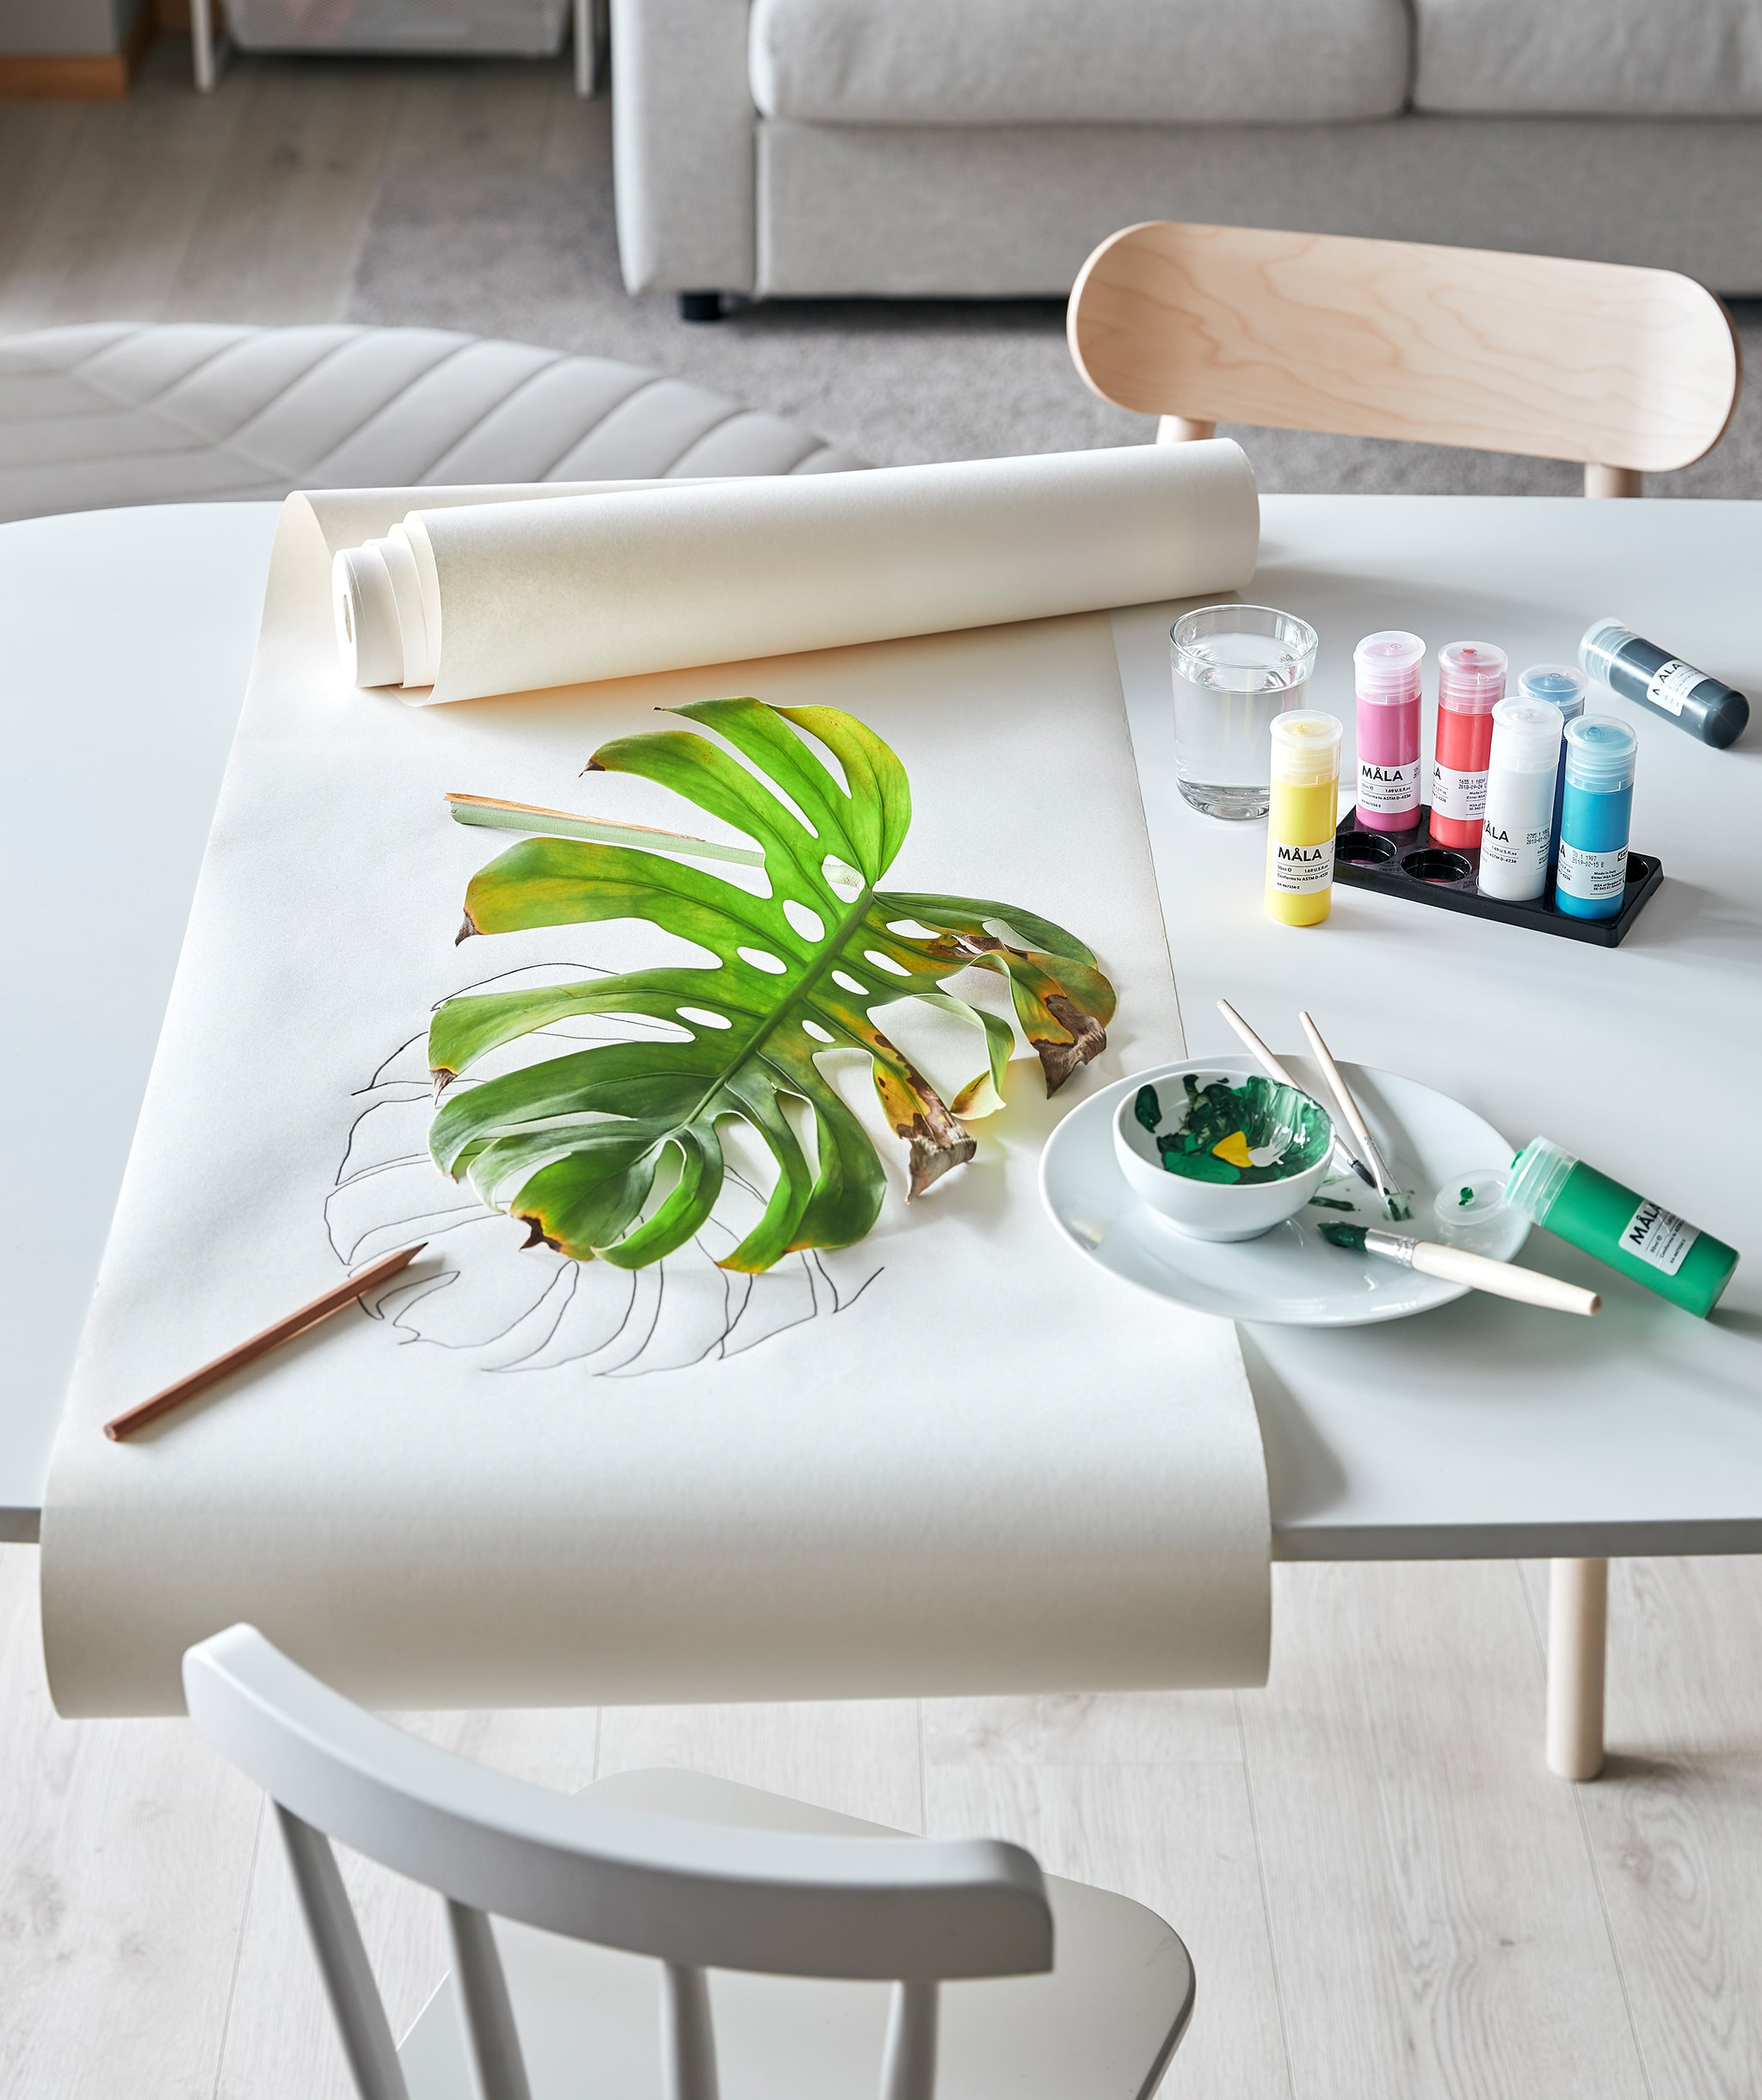 Living room table arranged for a plant-based art session: MÅLA paint, drawing paper and a partly withered MONSTRERA leaf.